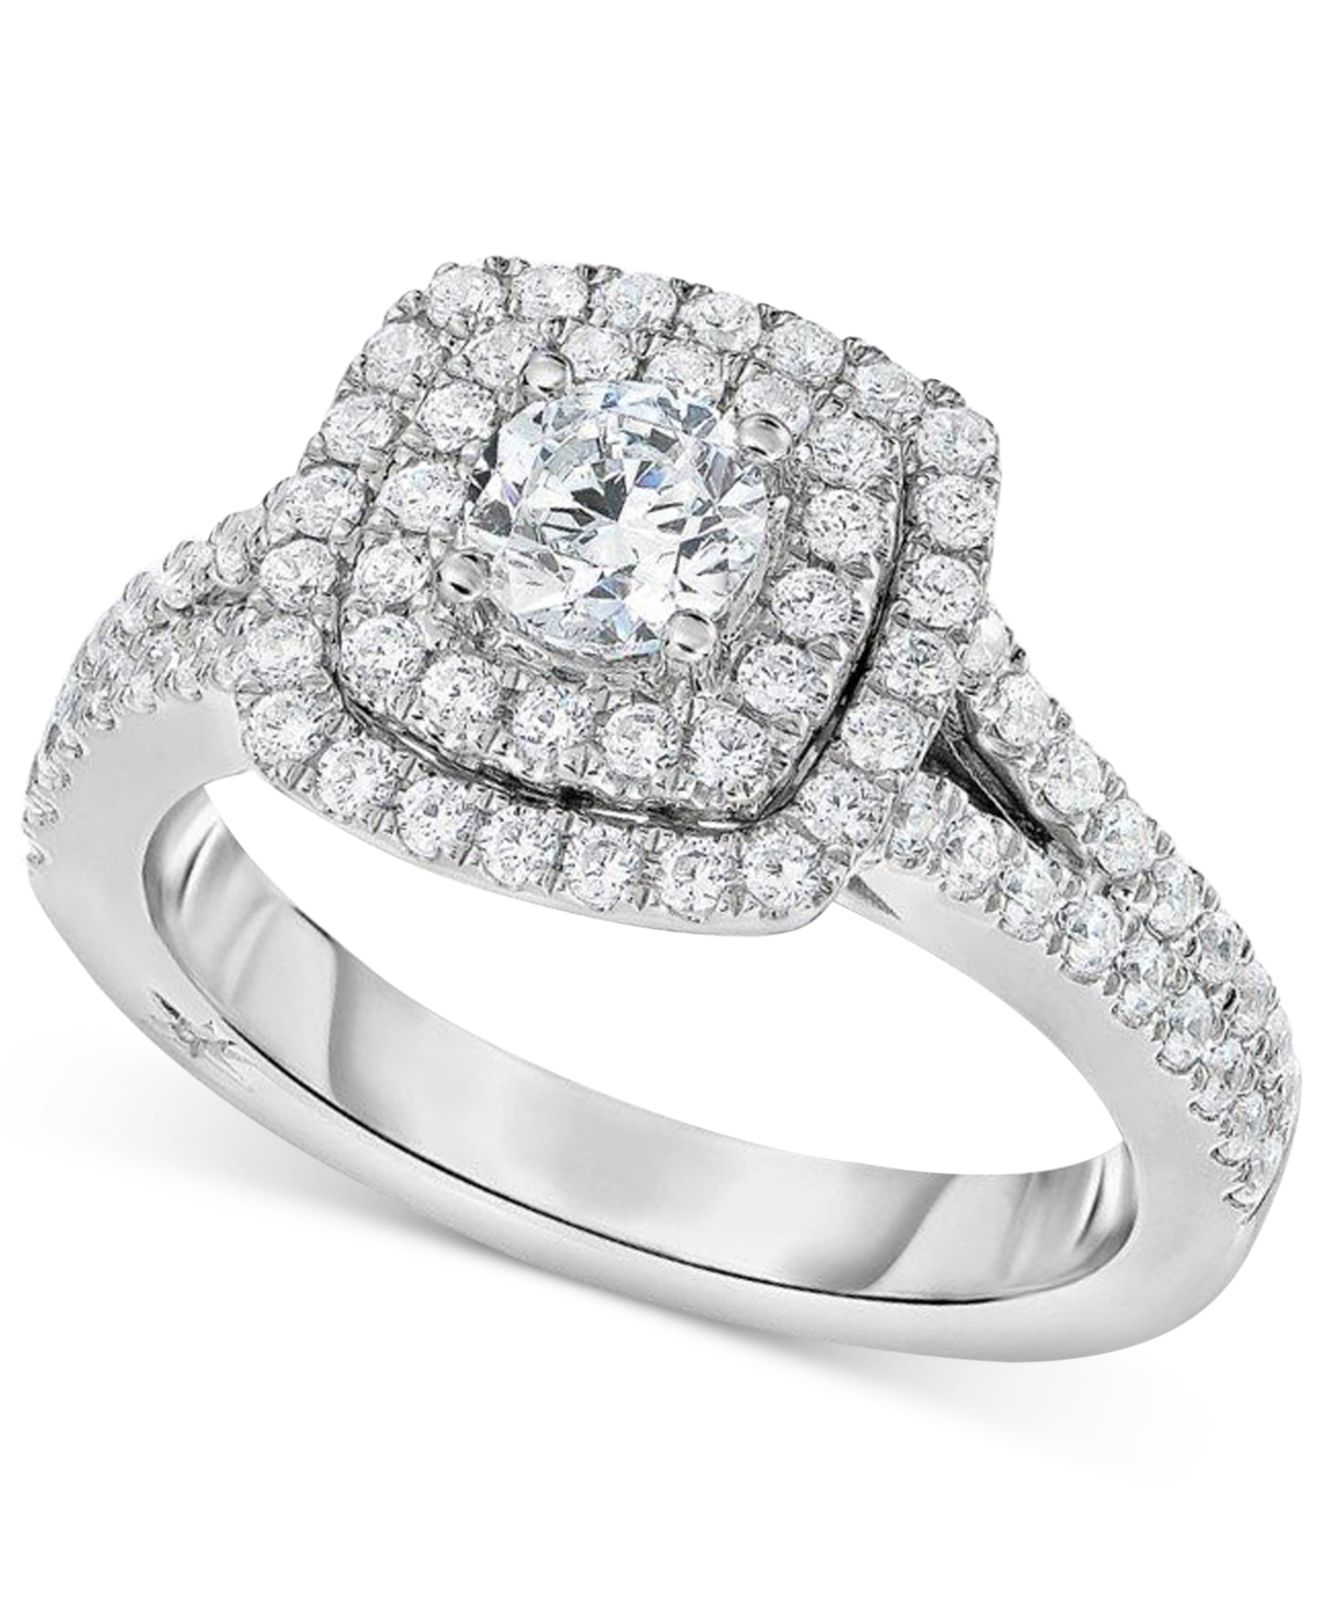 Marchesa Certified Diamond Square Halo Engagement Ring 1 1 4 Ct T w In 18